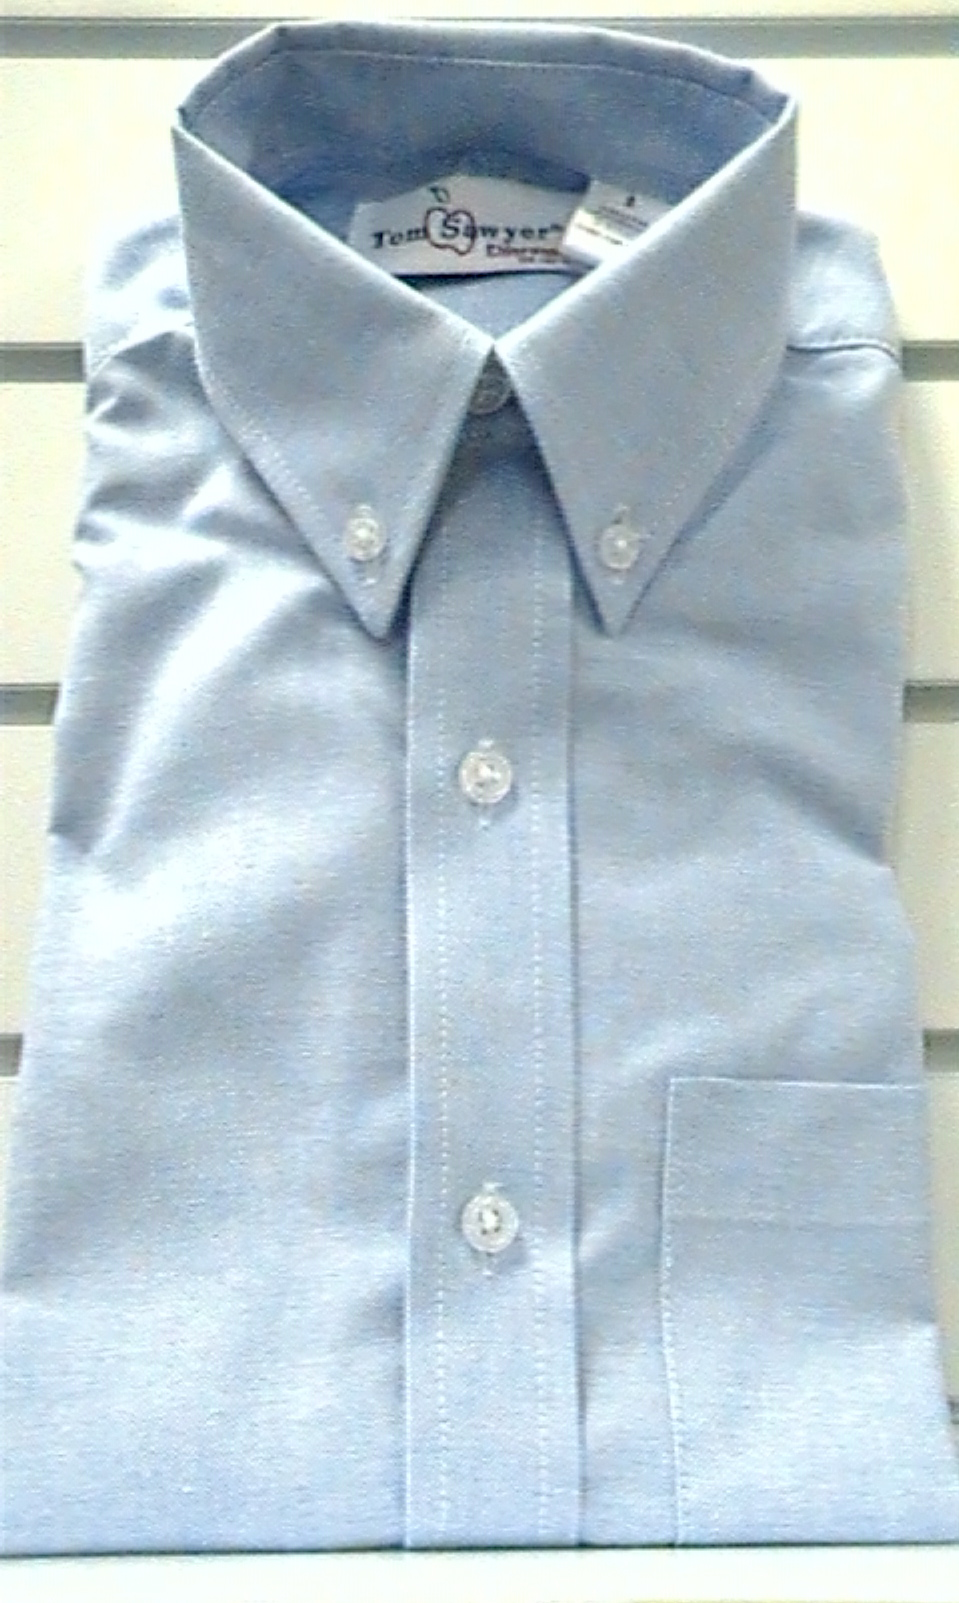 BlueShort SleeveOxfordcloth Buttondown Collar Shirt